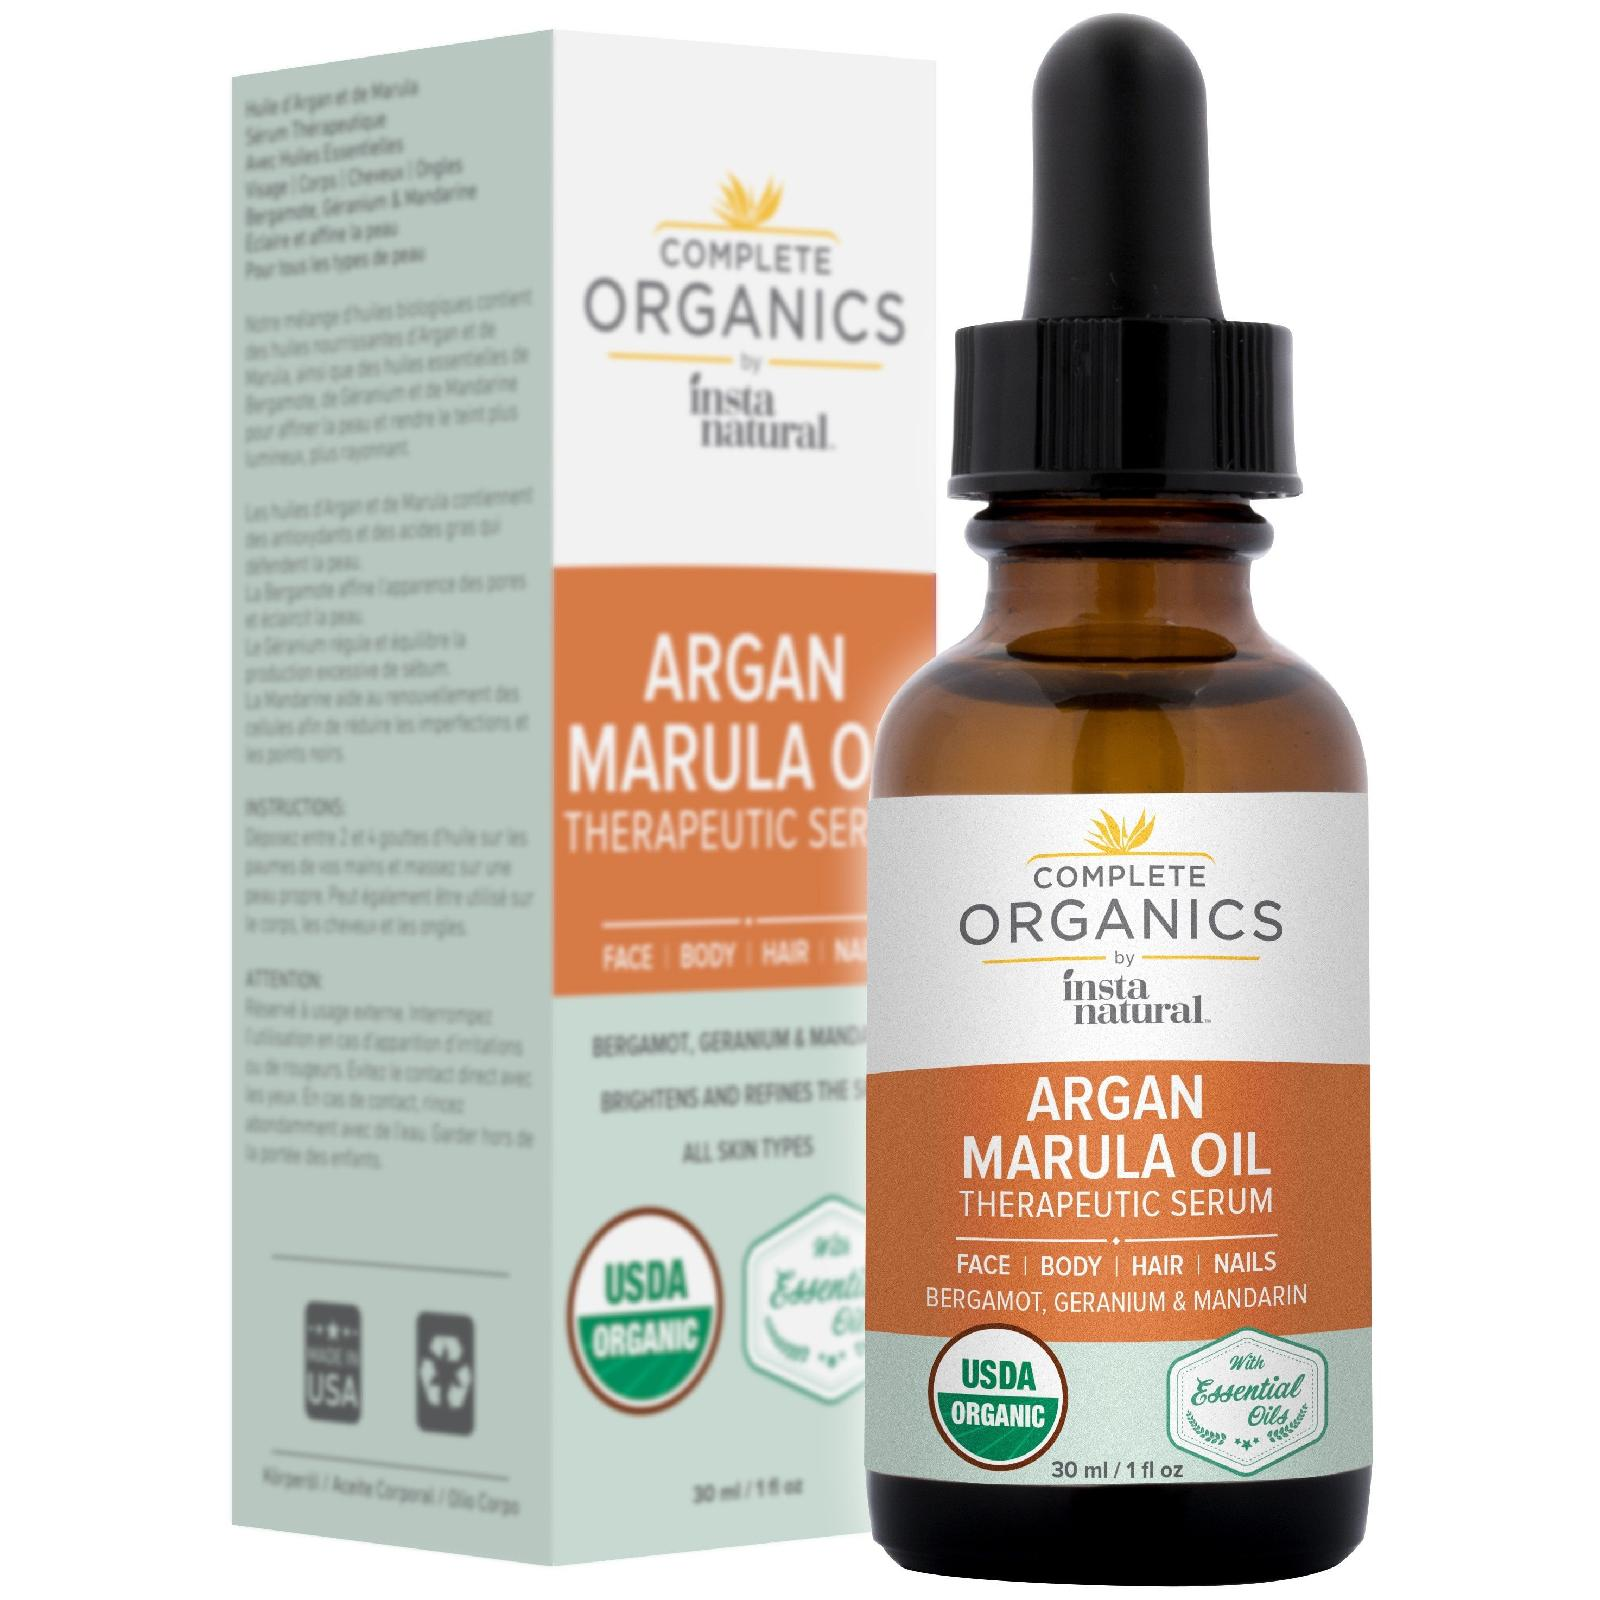 Complete Organics - Argan Marula Oil Therapeutic Serum